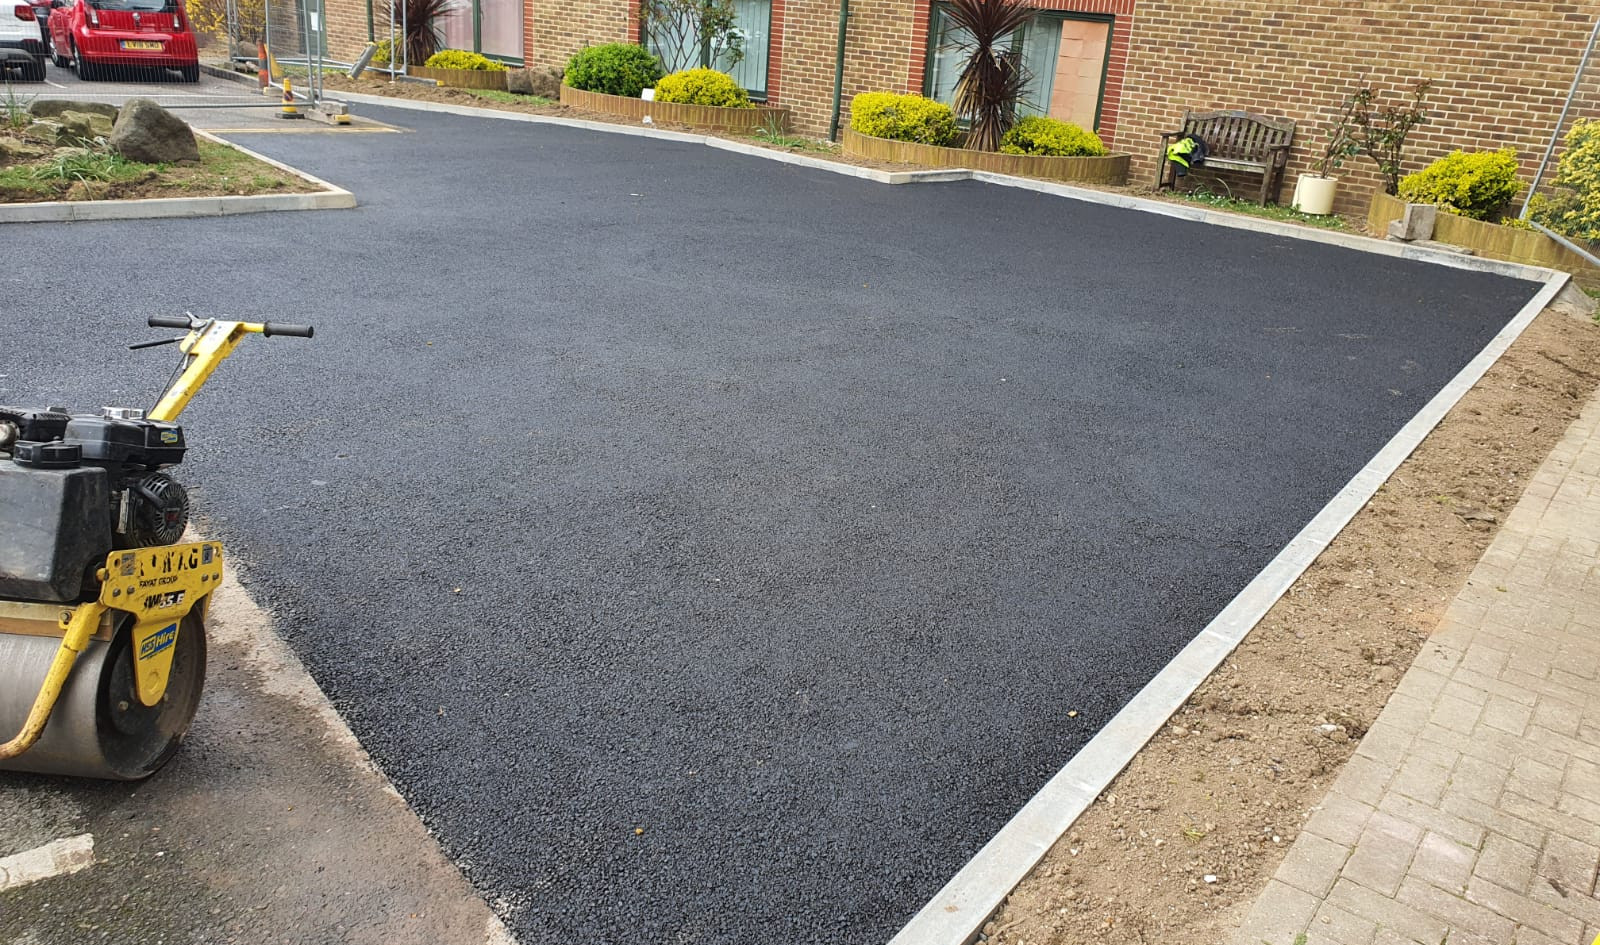 Tarmac progress. Car Park Extension, Croydon